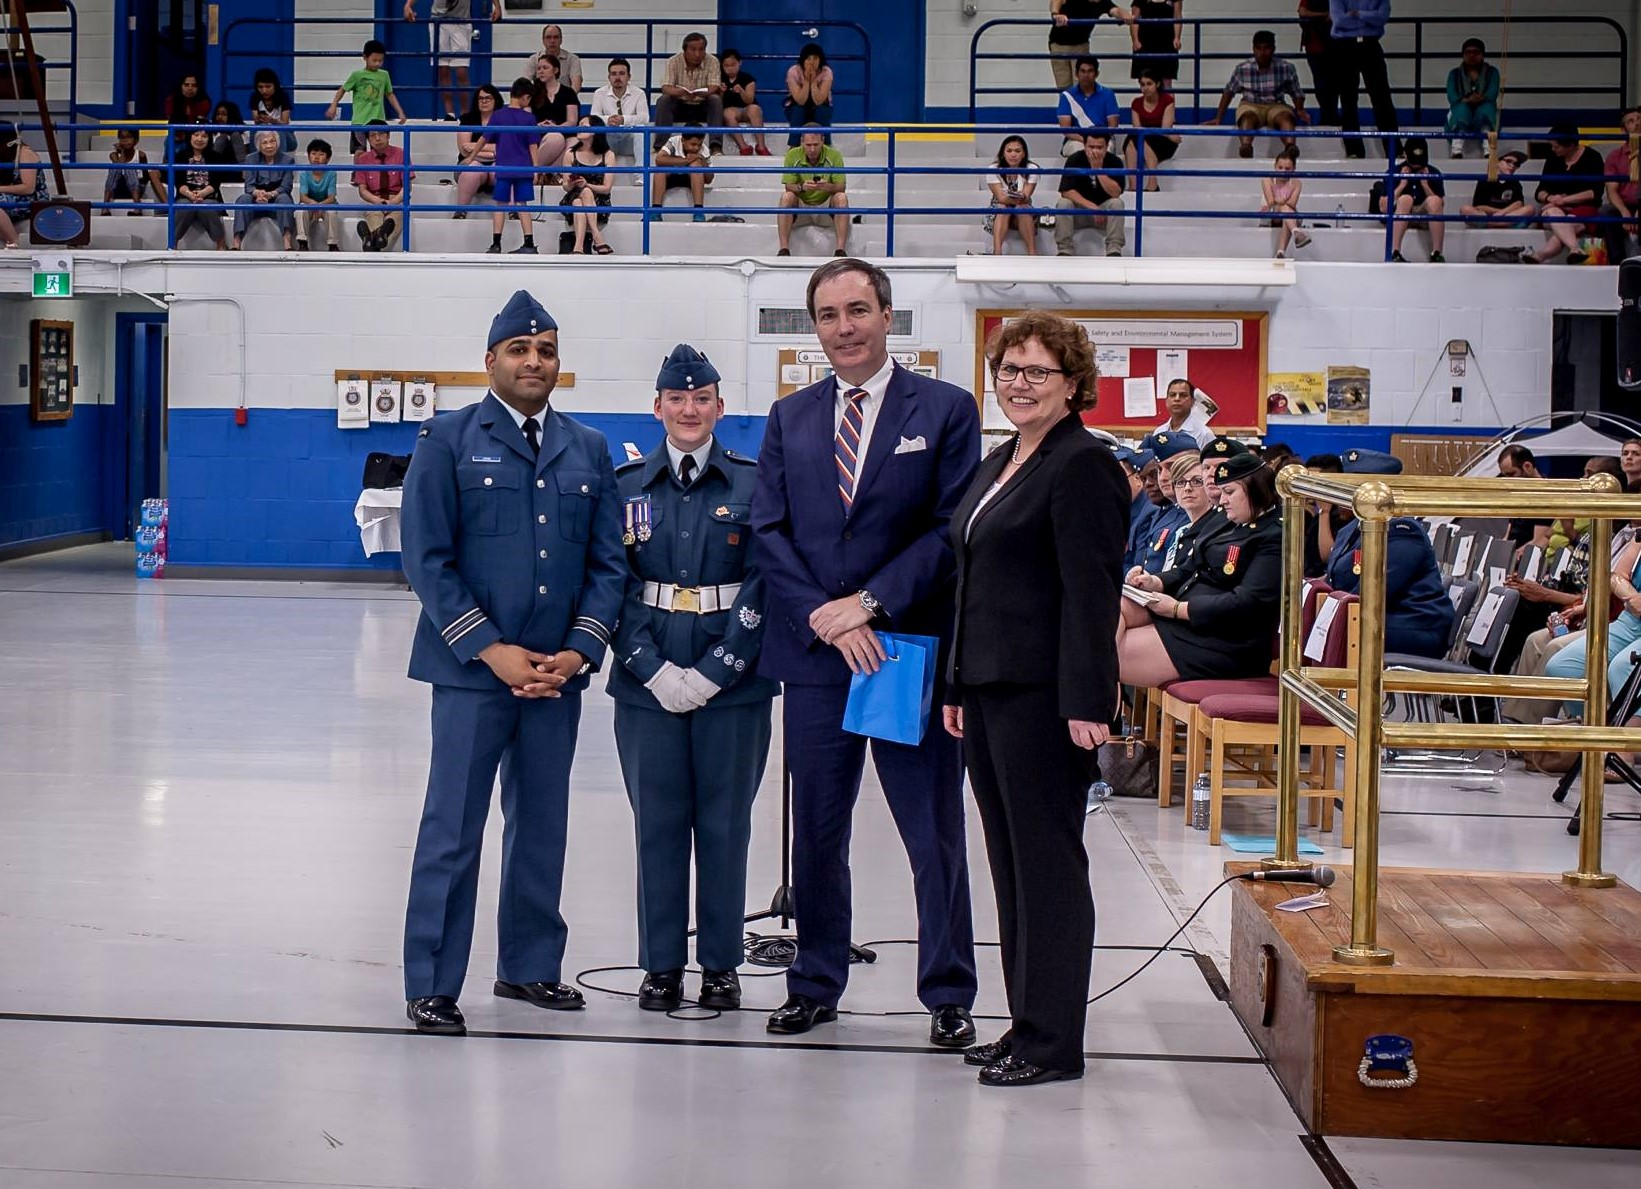 73rd Annual Ceremonial Review